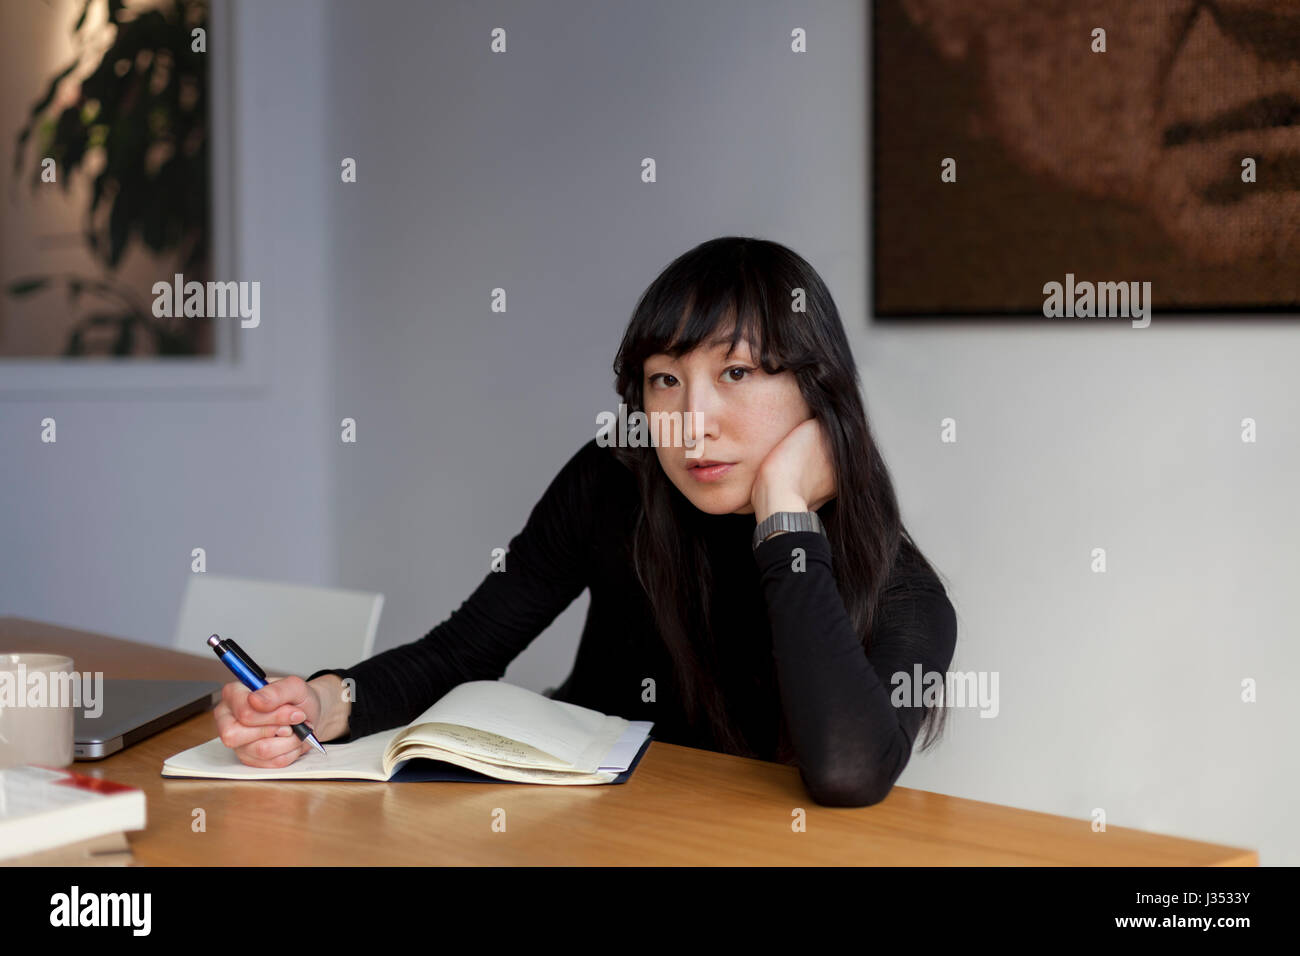 Portrait d'un professionnel young businesswoman Photo Stock